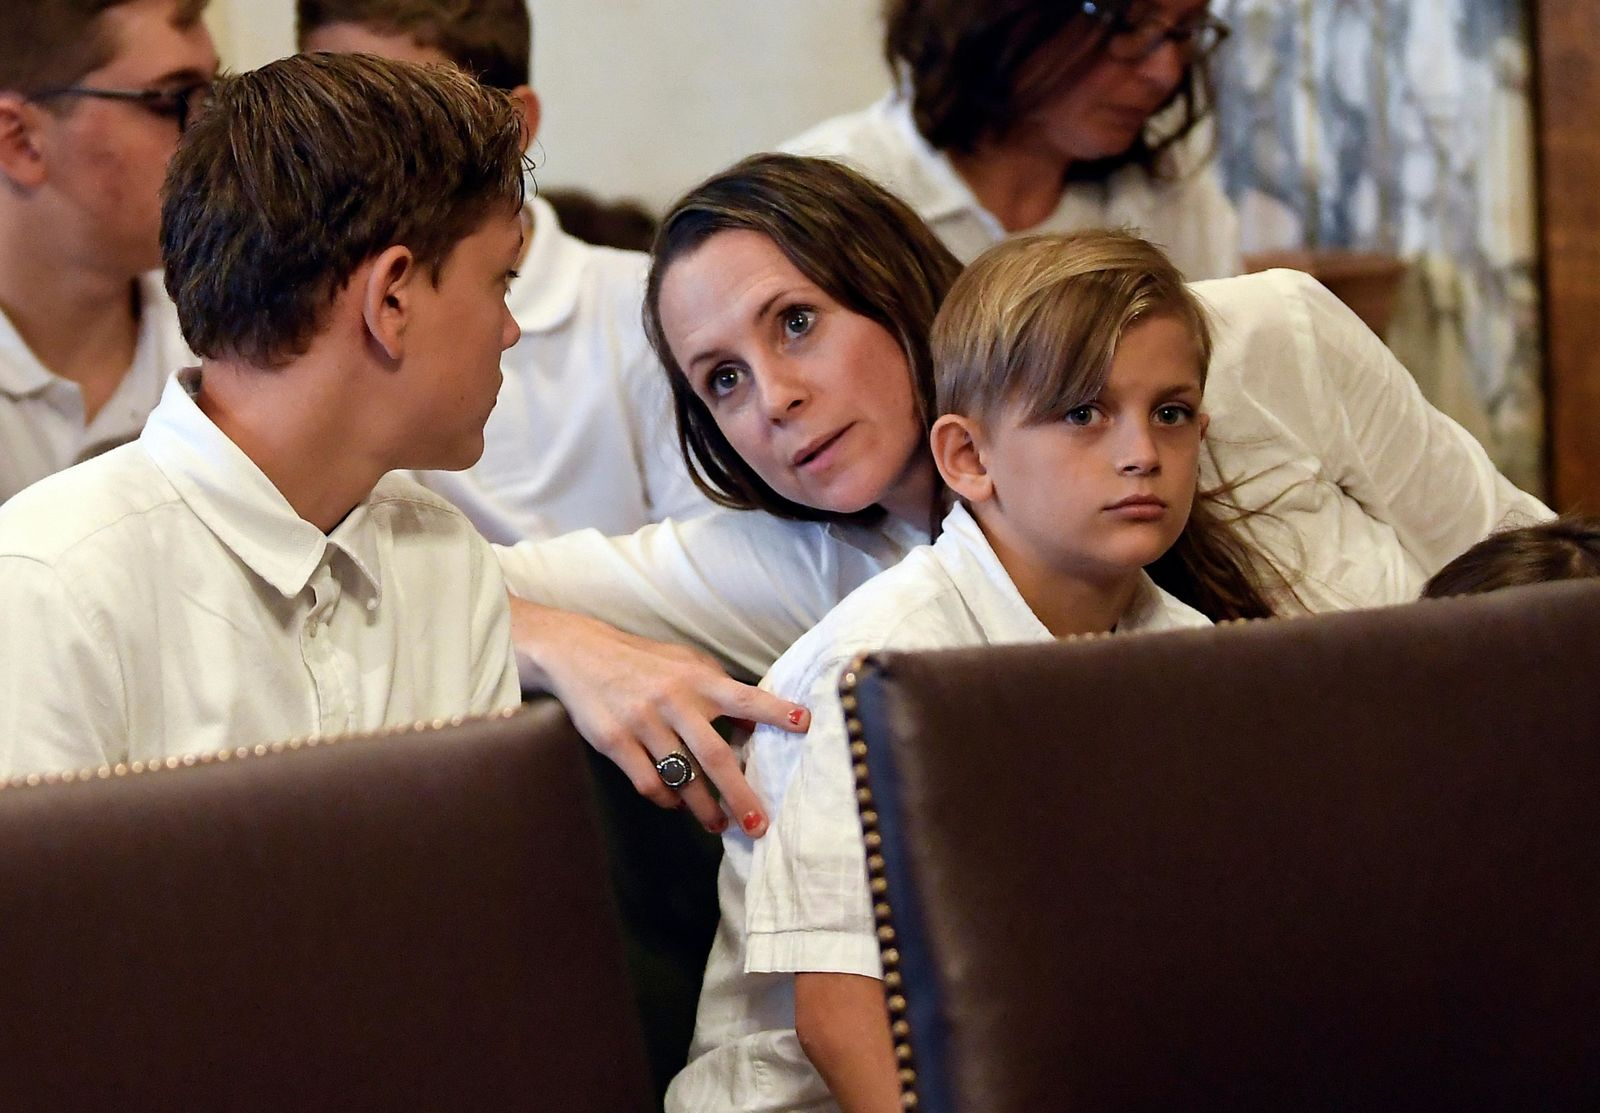 FILE - In this Aug. 14, 2019, file photo, Leslie Danesi, center, sits with her children Lorenzo Danesi, left, and Gabriel Danes, right, as attorneys prepare to speak at a hearing challenging the constitutionality of the state legislature's repeal of the religious exemption to vaccination in Albany, N.Y.(AP Photo/Hans Pennink, File)